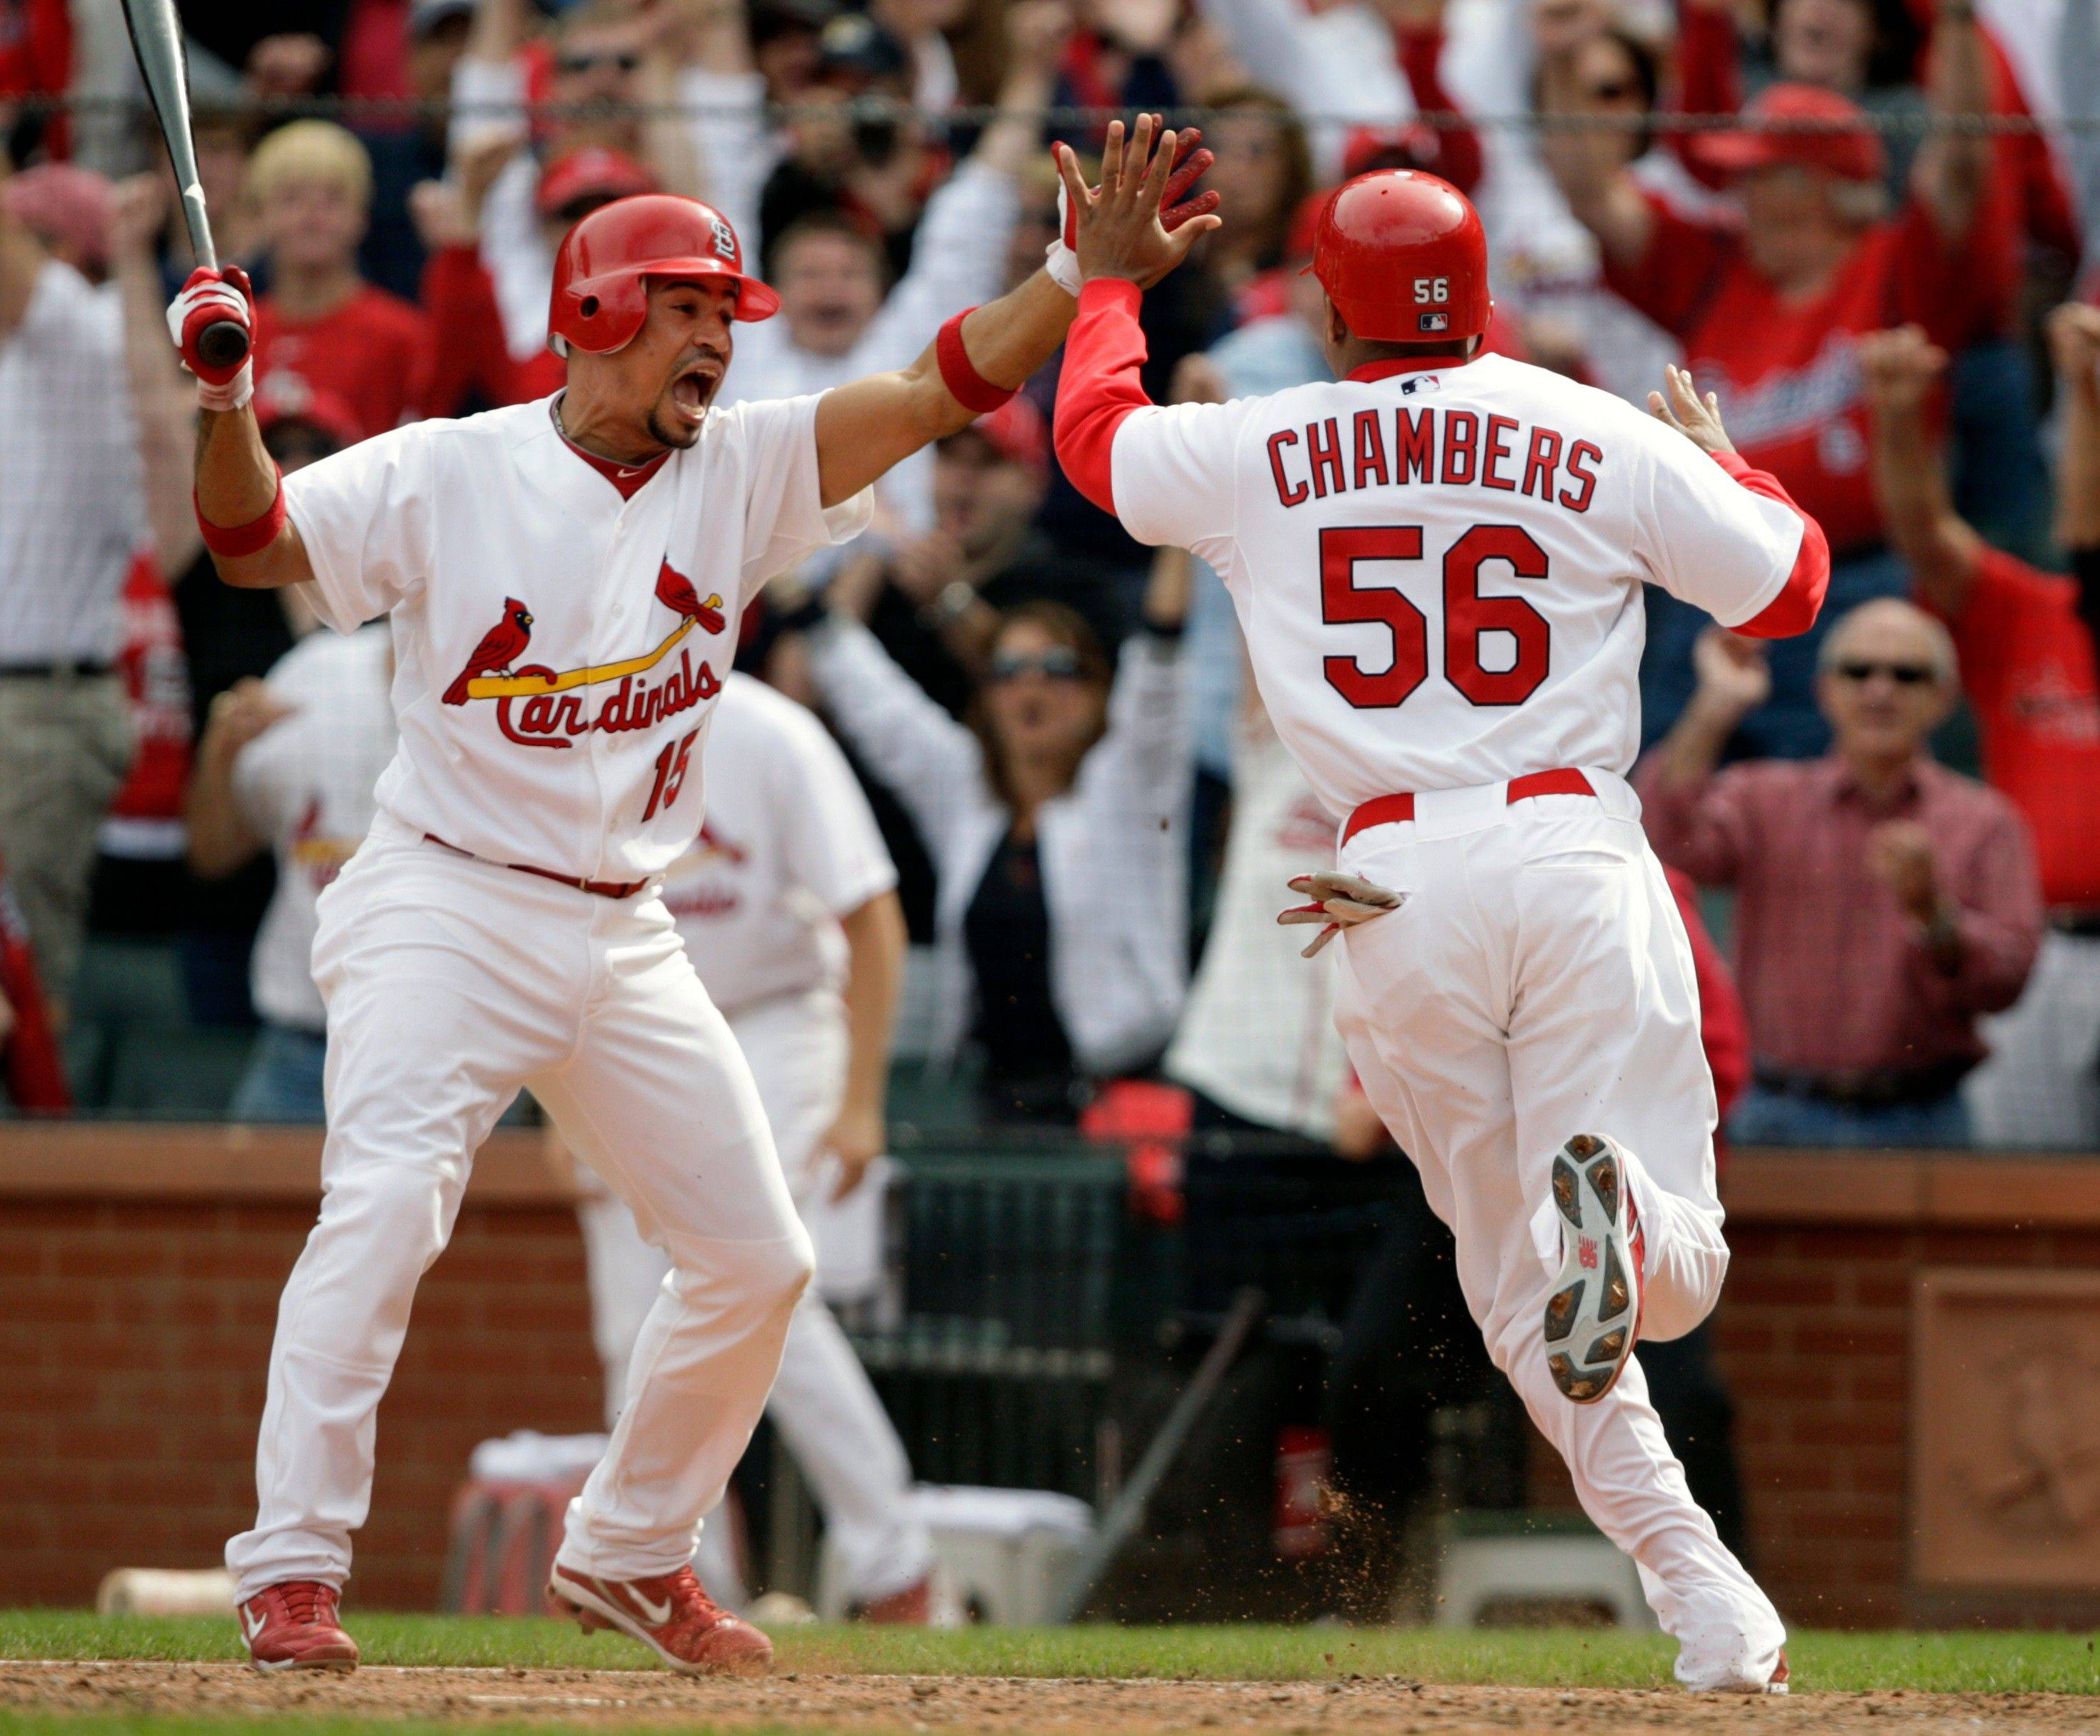 St. Louis Cardinals' Adron Chambers (56) celebrates with teammate Rafael Furcal as he scores the game-winning run from third on a wild pitch by Cubs relief pitcher Carlos Marmol in the ninth inning Saturday in St. Louis. Marmol also gave up the tying run on a bases-loaded walk.